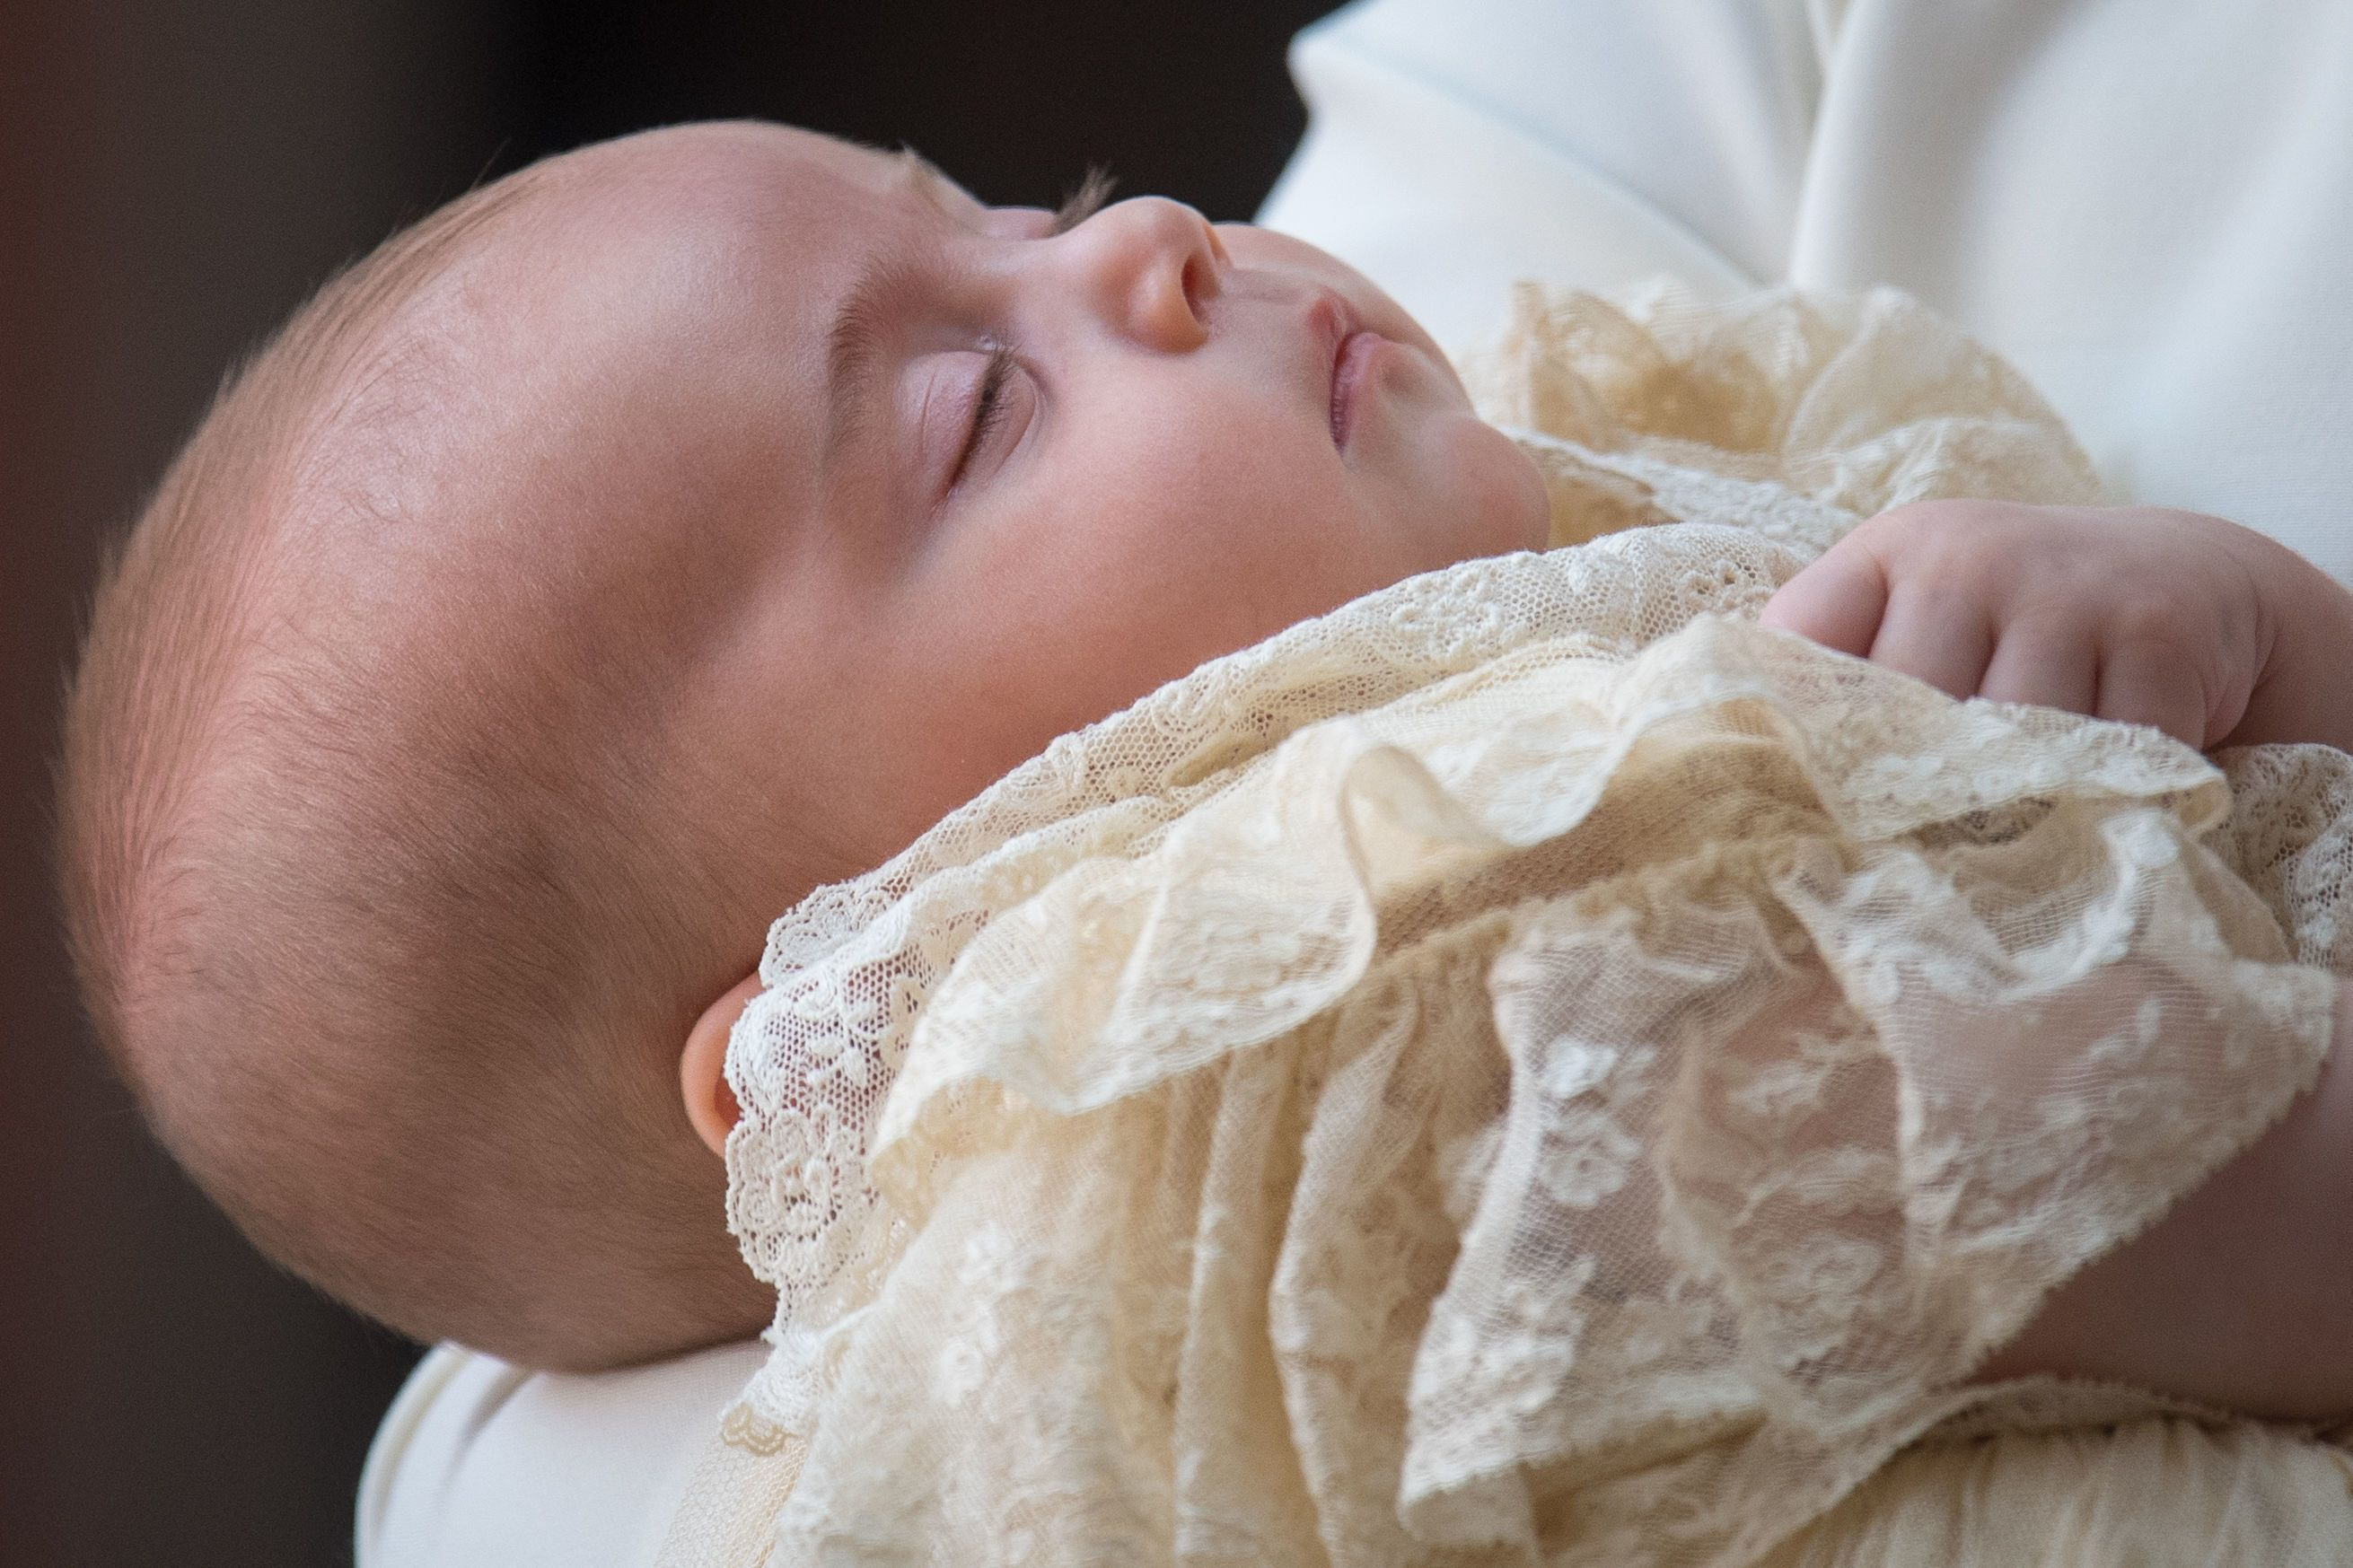 Royal family: Queen and Prince Philip to miss Prince Louis' christening